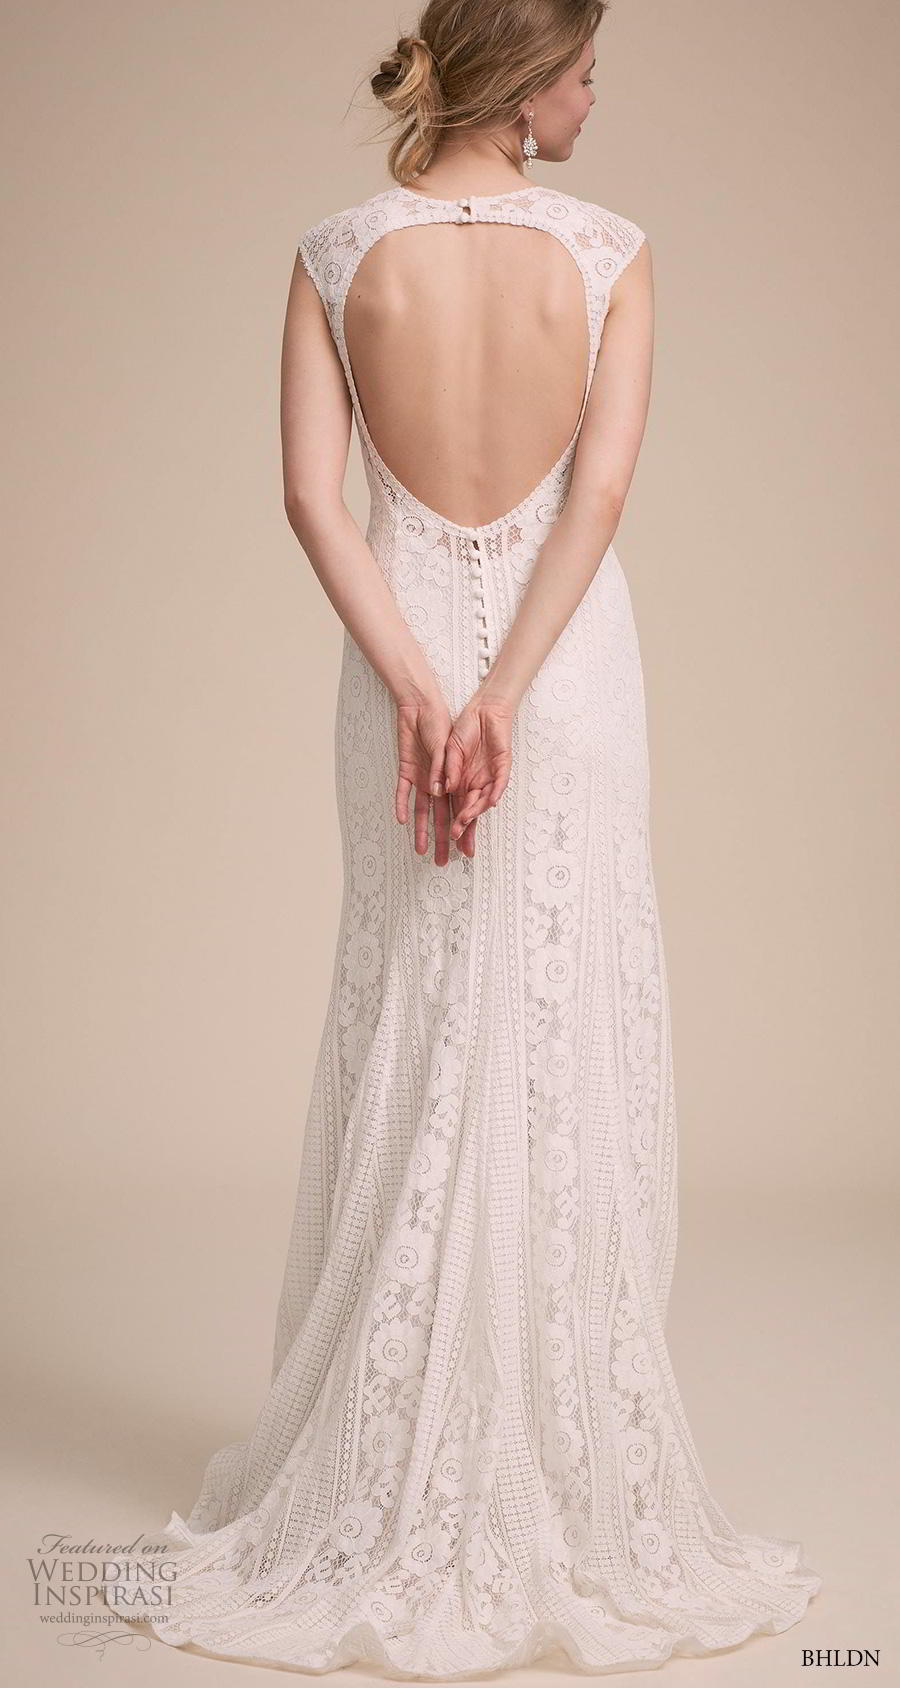 bhldn 2018 own bridal cap sleeves jewel neck full embellishment elegant bohemian modified a  line wedding dress keyhole back sweep train (12) bv